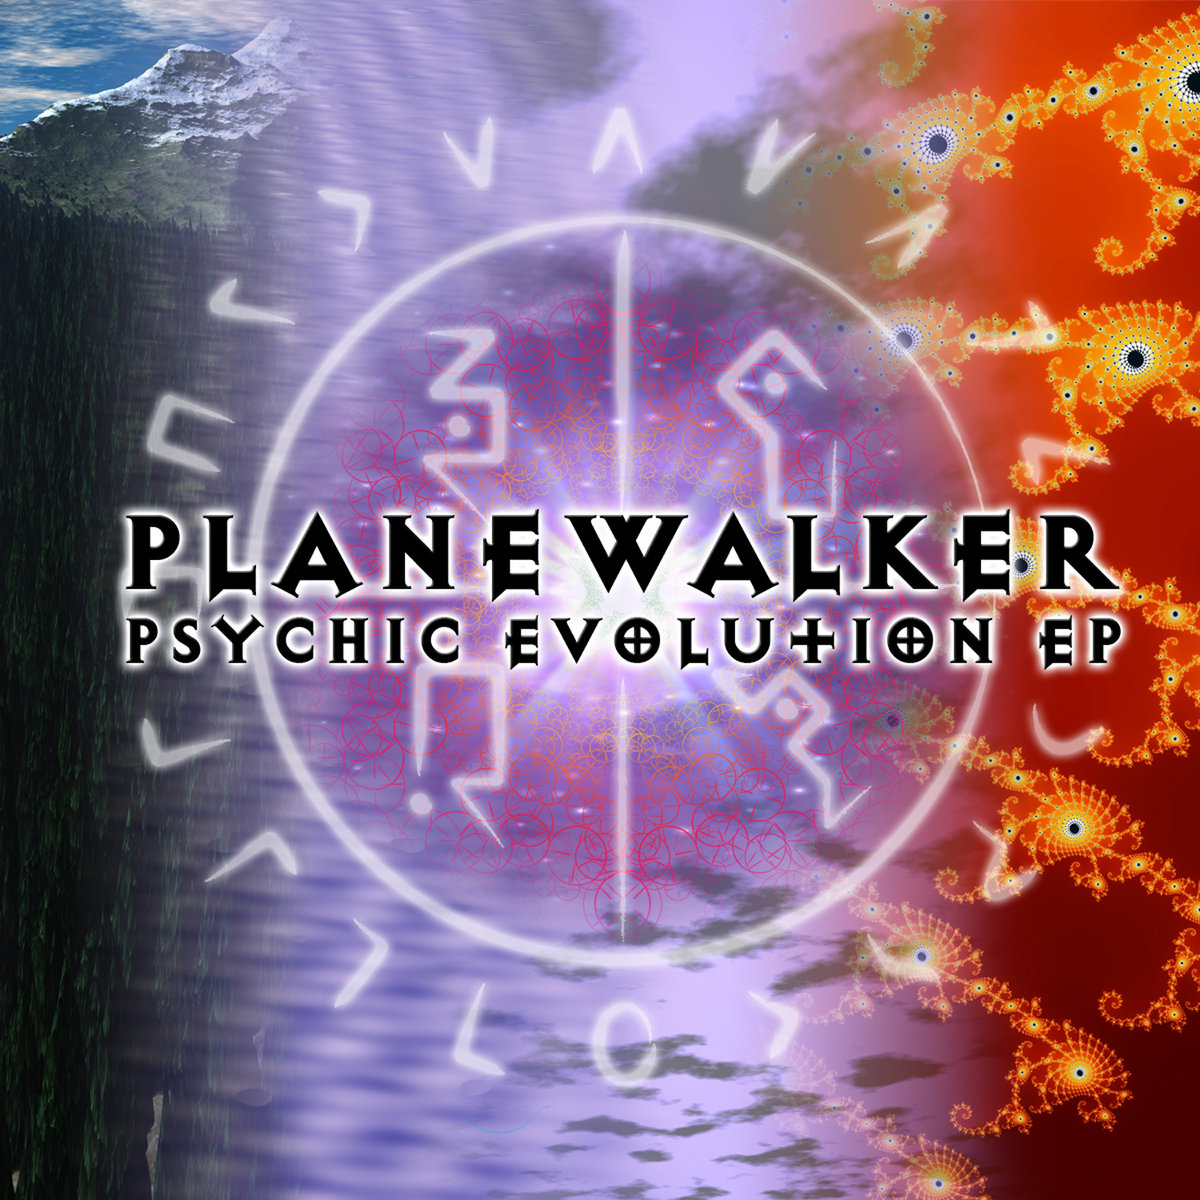 Planewalker - Psychic Evolution @ 'Psychic Evolution' album (electronic, goa)